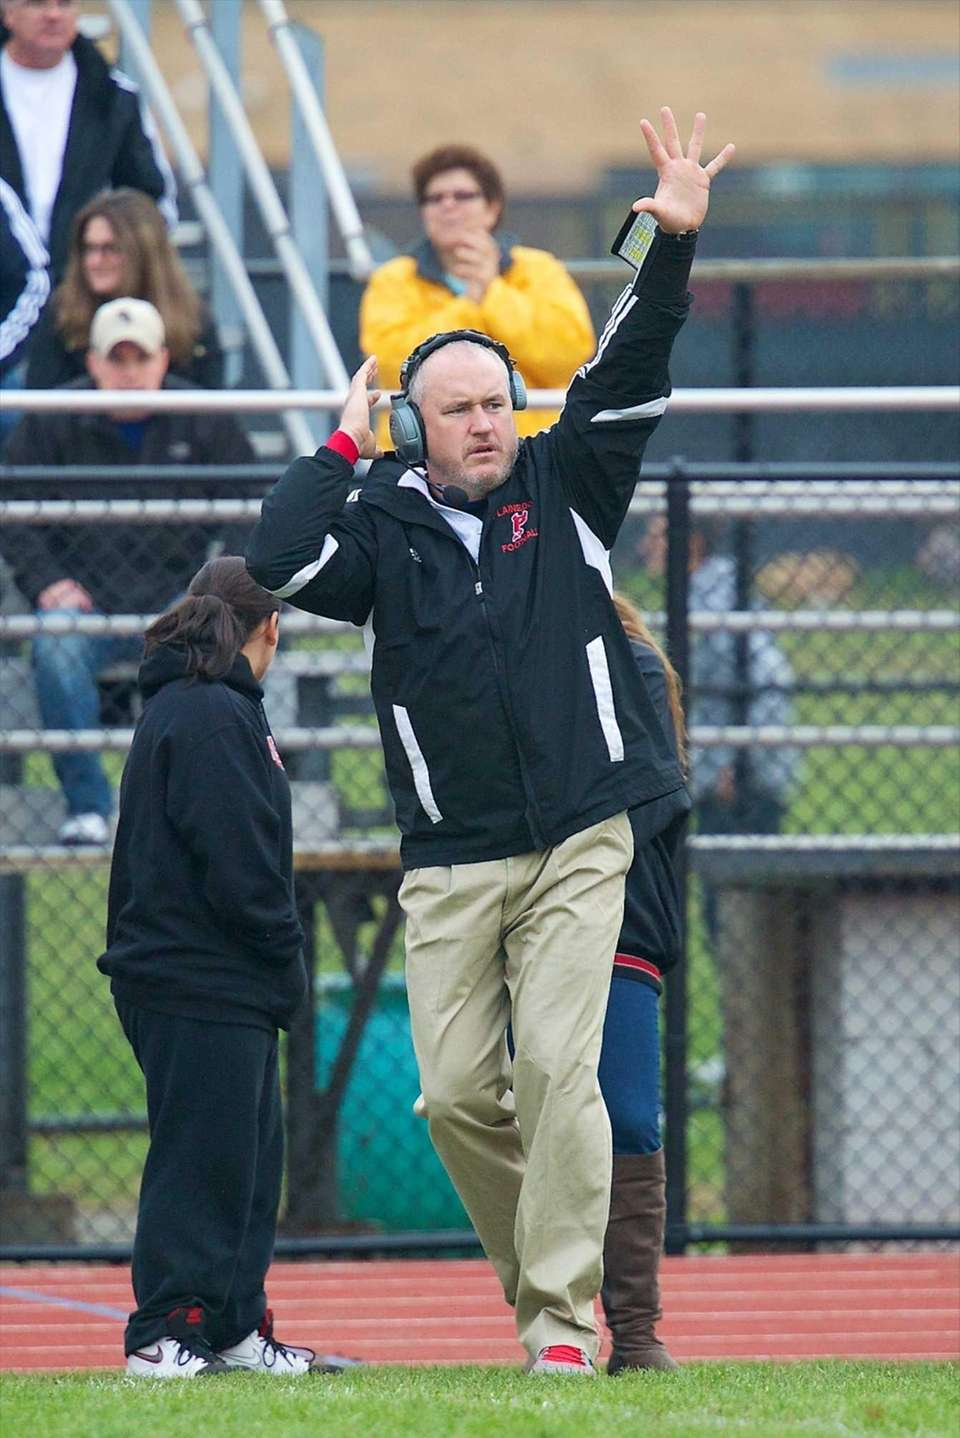 Plainedge coach Rob Shaver calls out the play